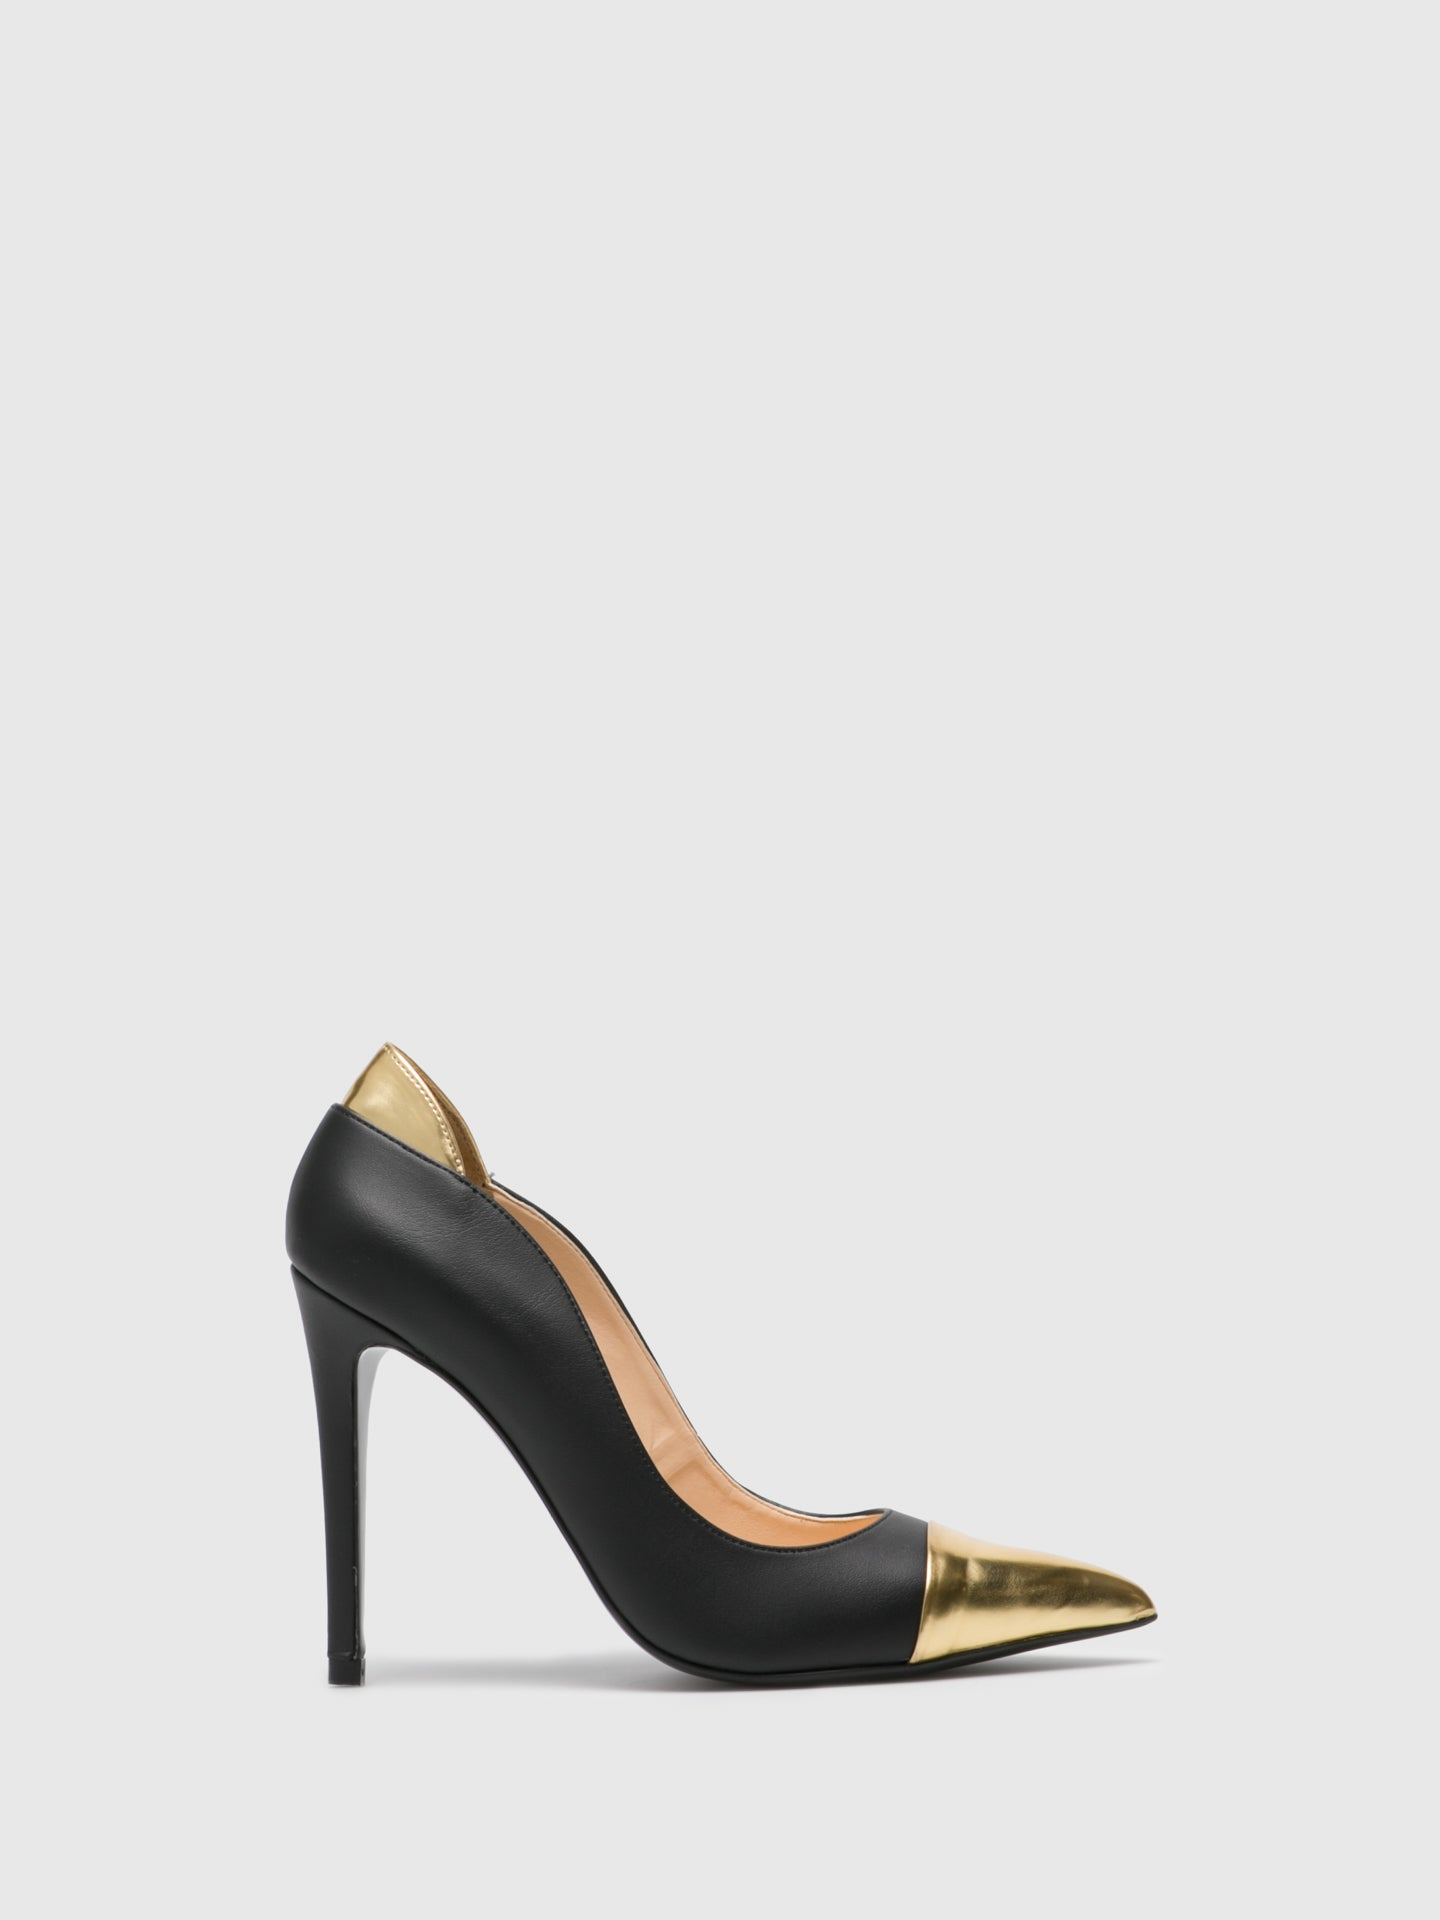 PATRICIA CORREIA Matte Black Pointed Toe Pumps